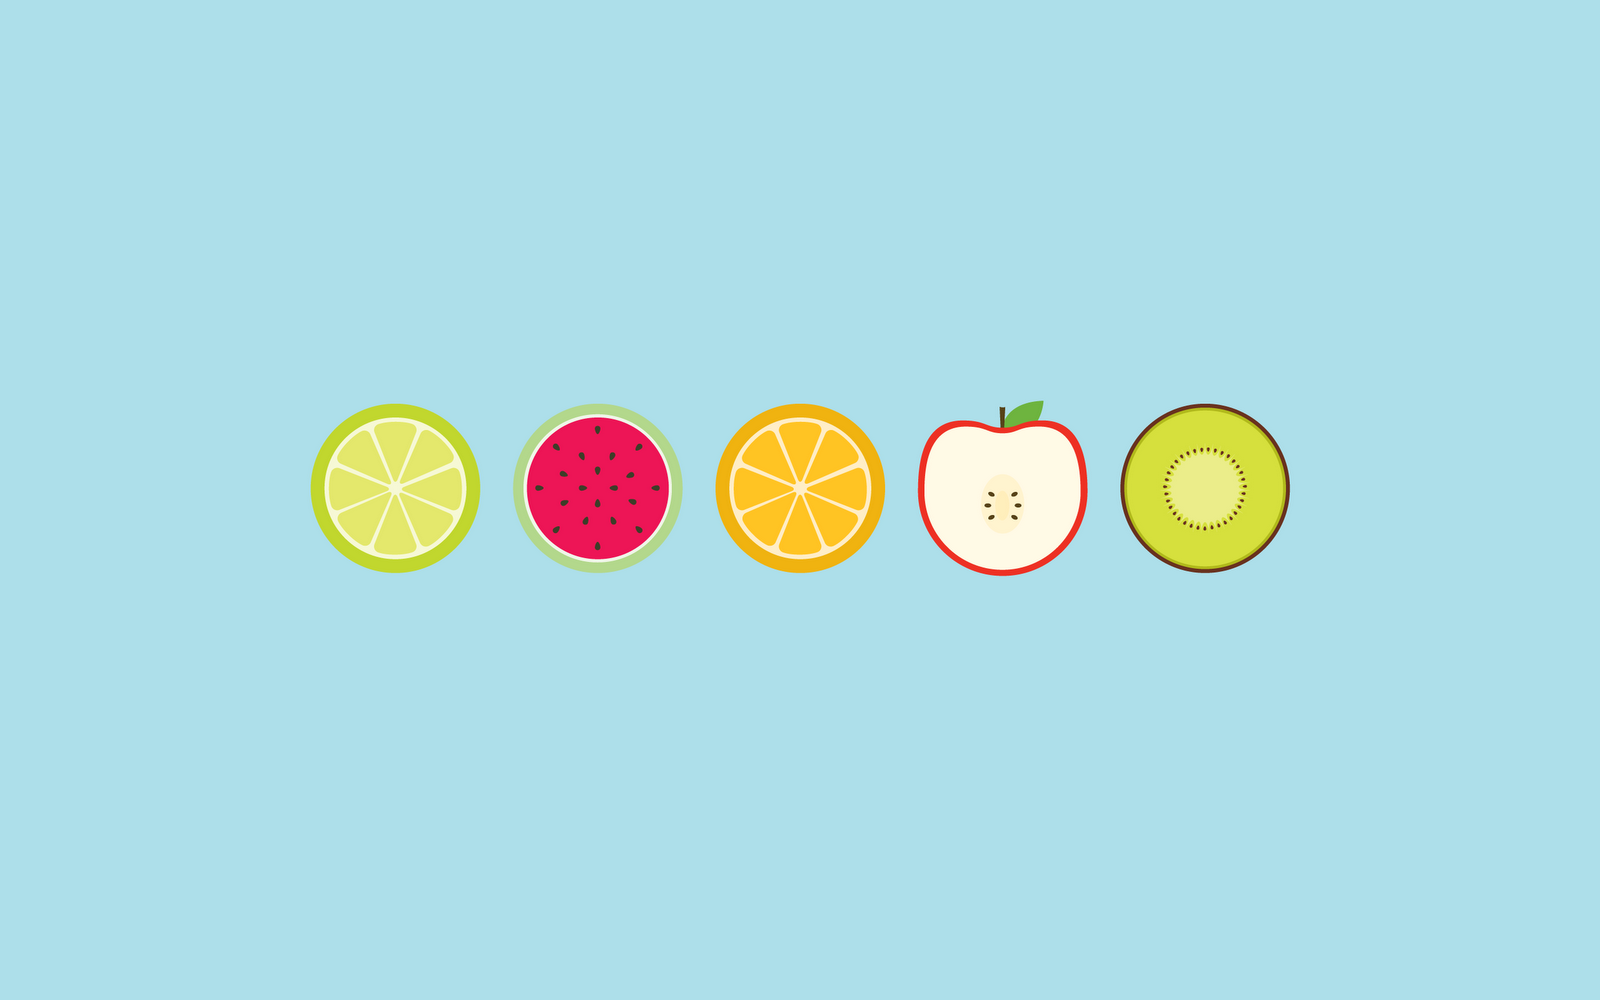 Cute Fruit Wallpaper fruit salad wallpaper from